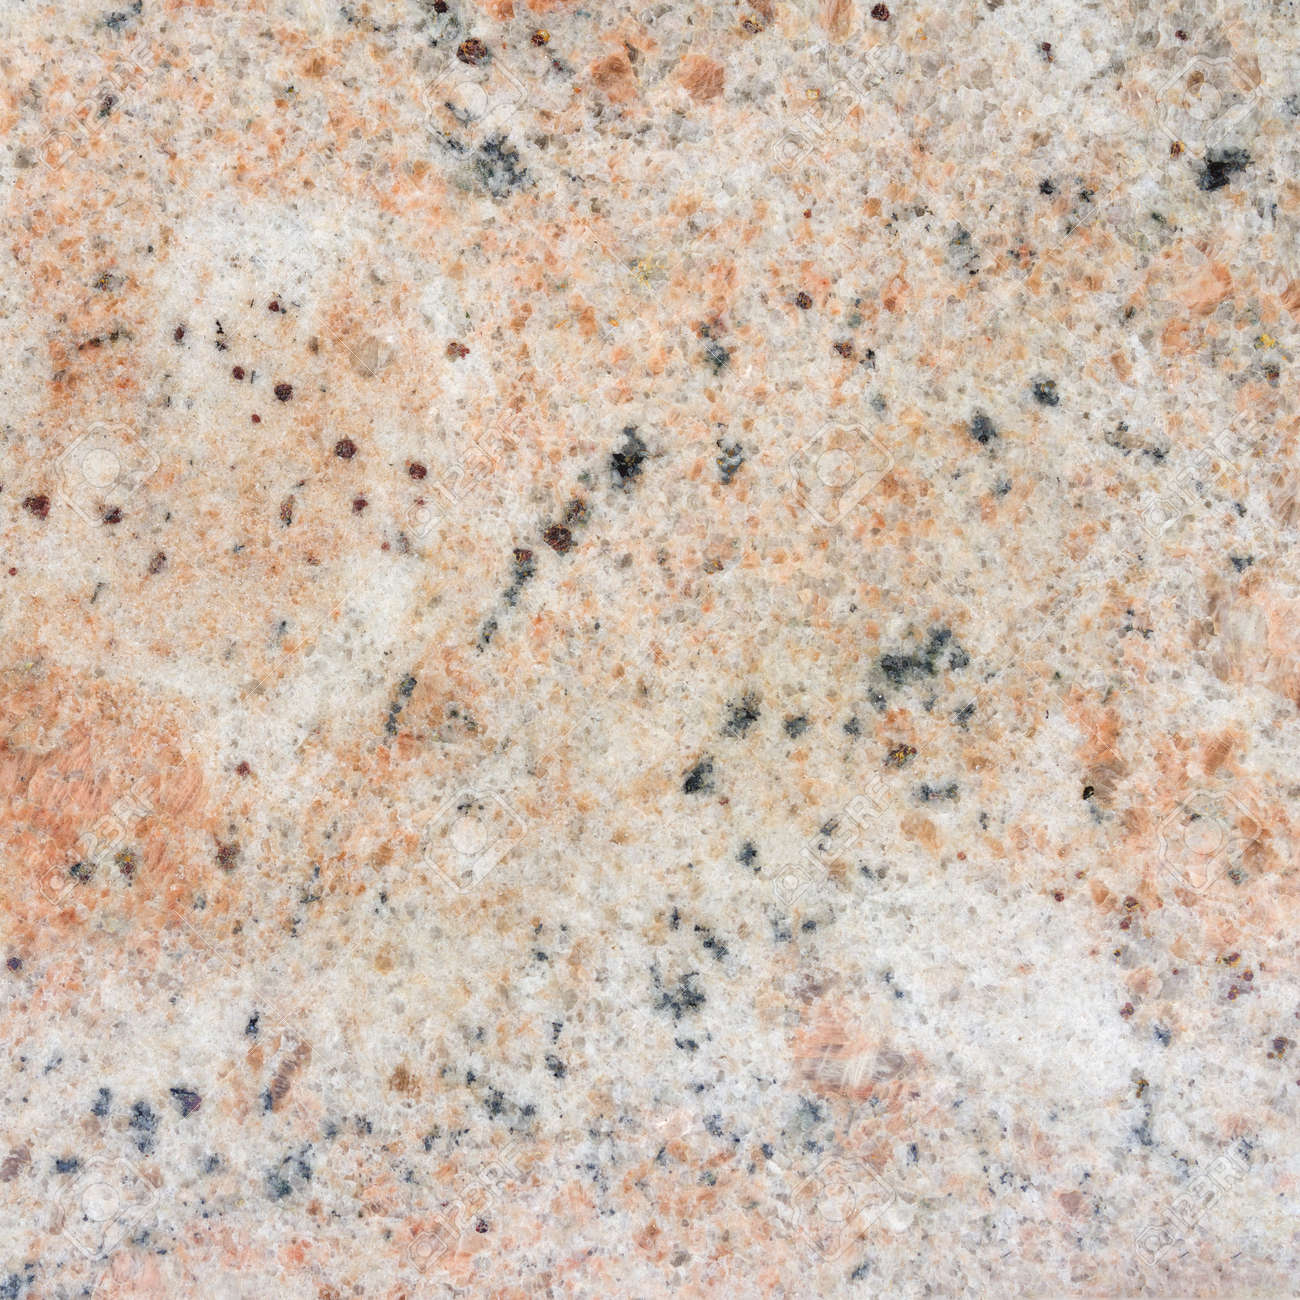 Beige Marble Background With Natural Pattern Stone Wall Texture Stock Photo